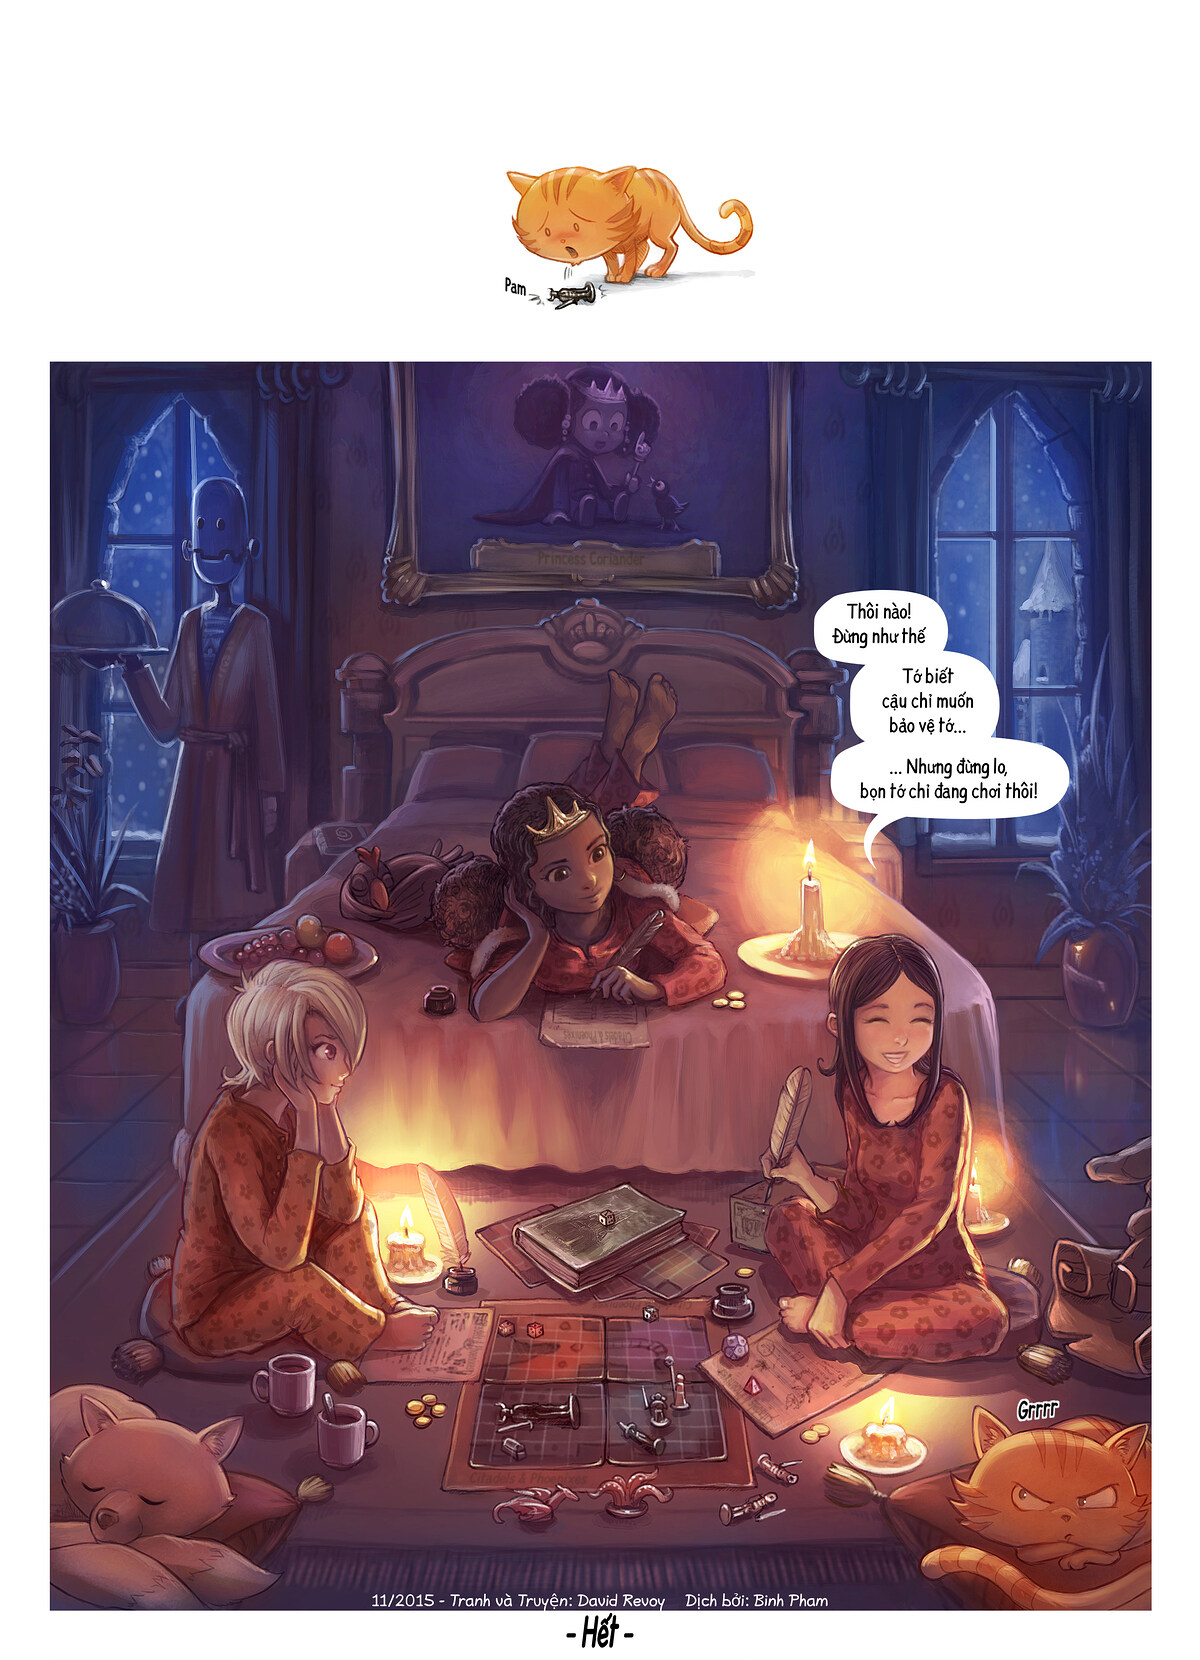 A webcomic page of Pepper&Carrot, Tập 13 [vi], trang 6